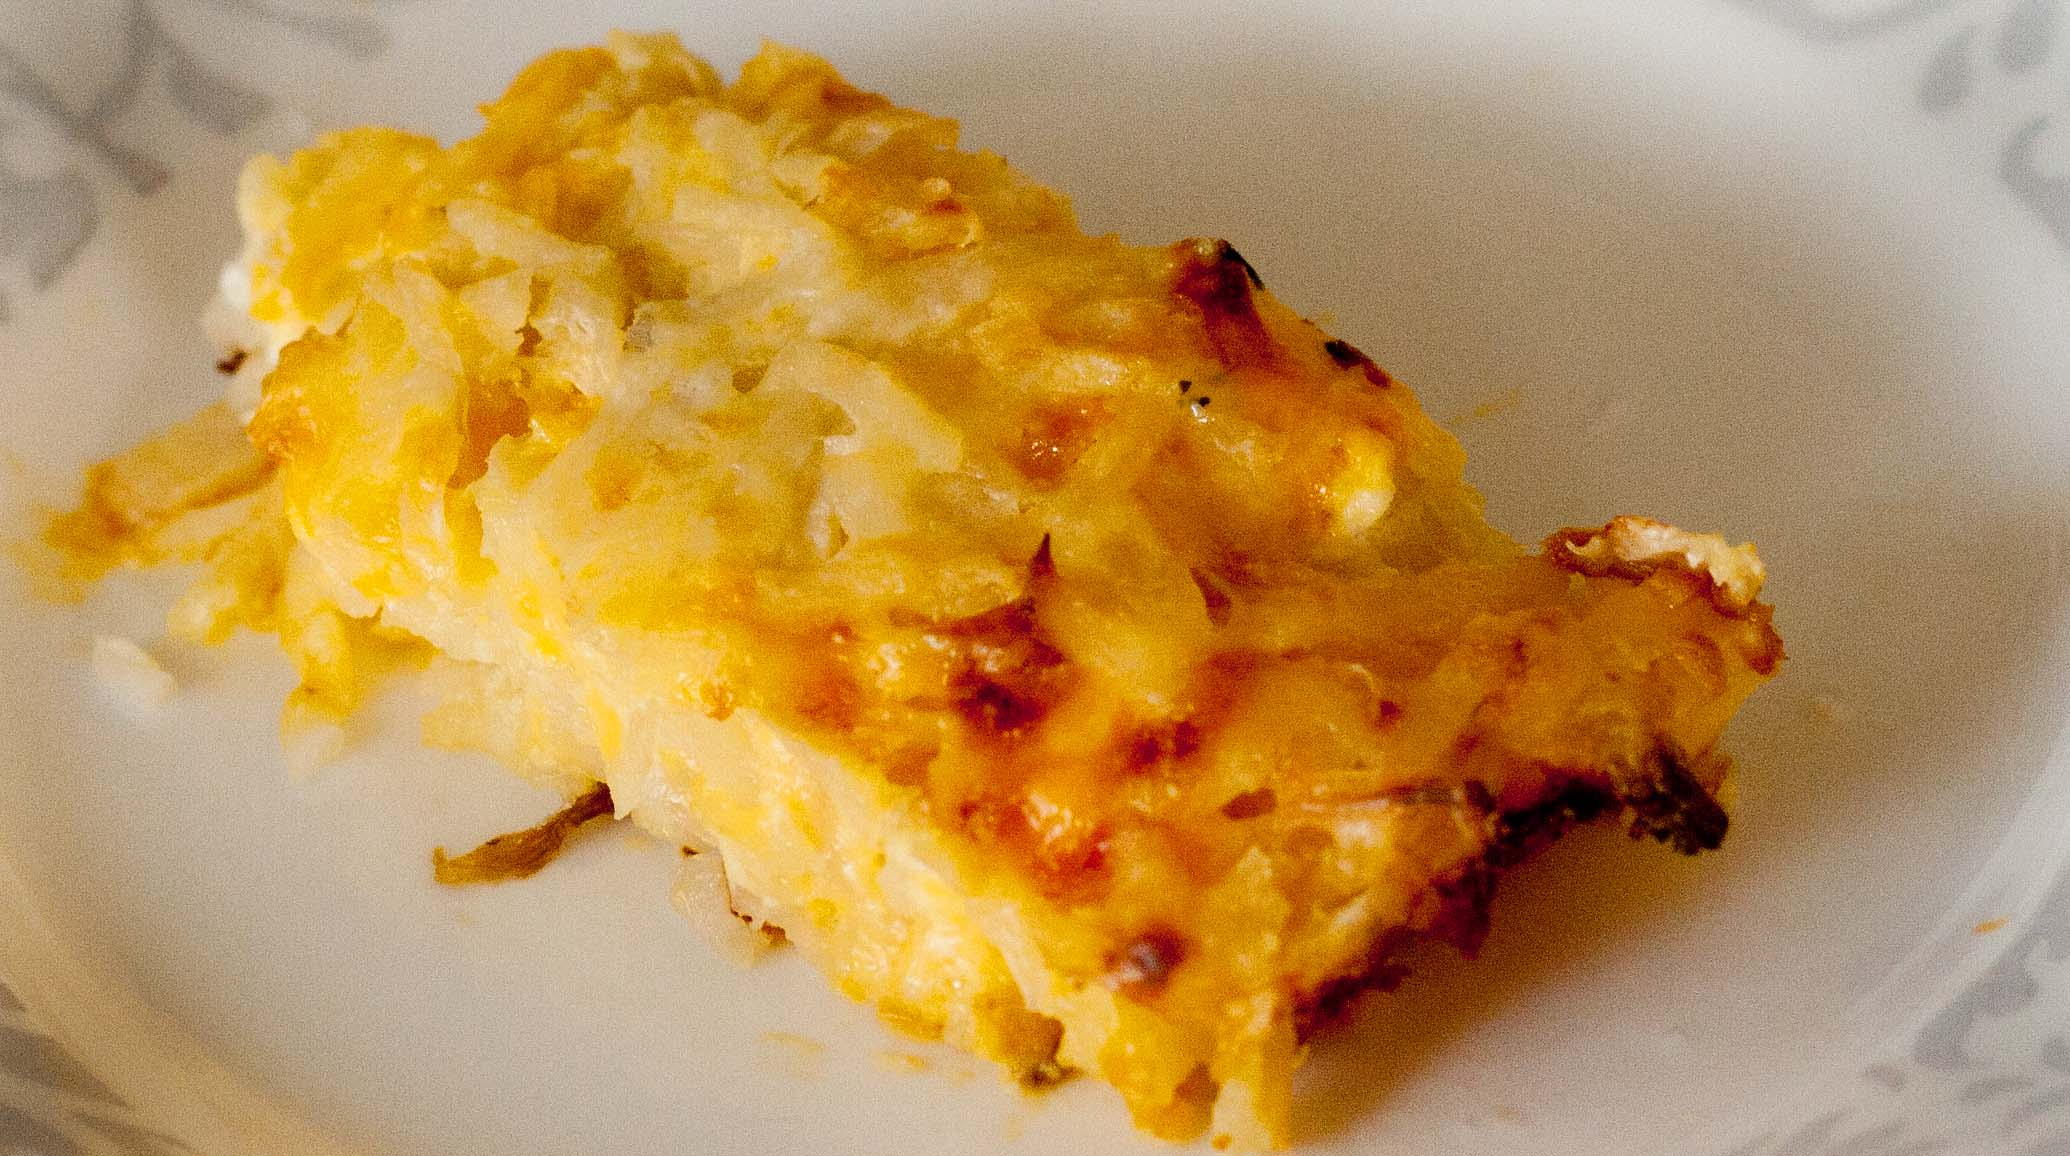 Take-out Fake-out: Cracker Barrel's Hash Brown Casserole